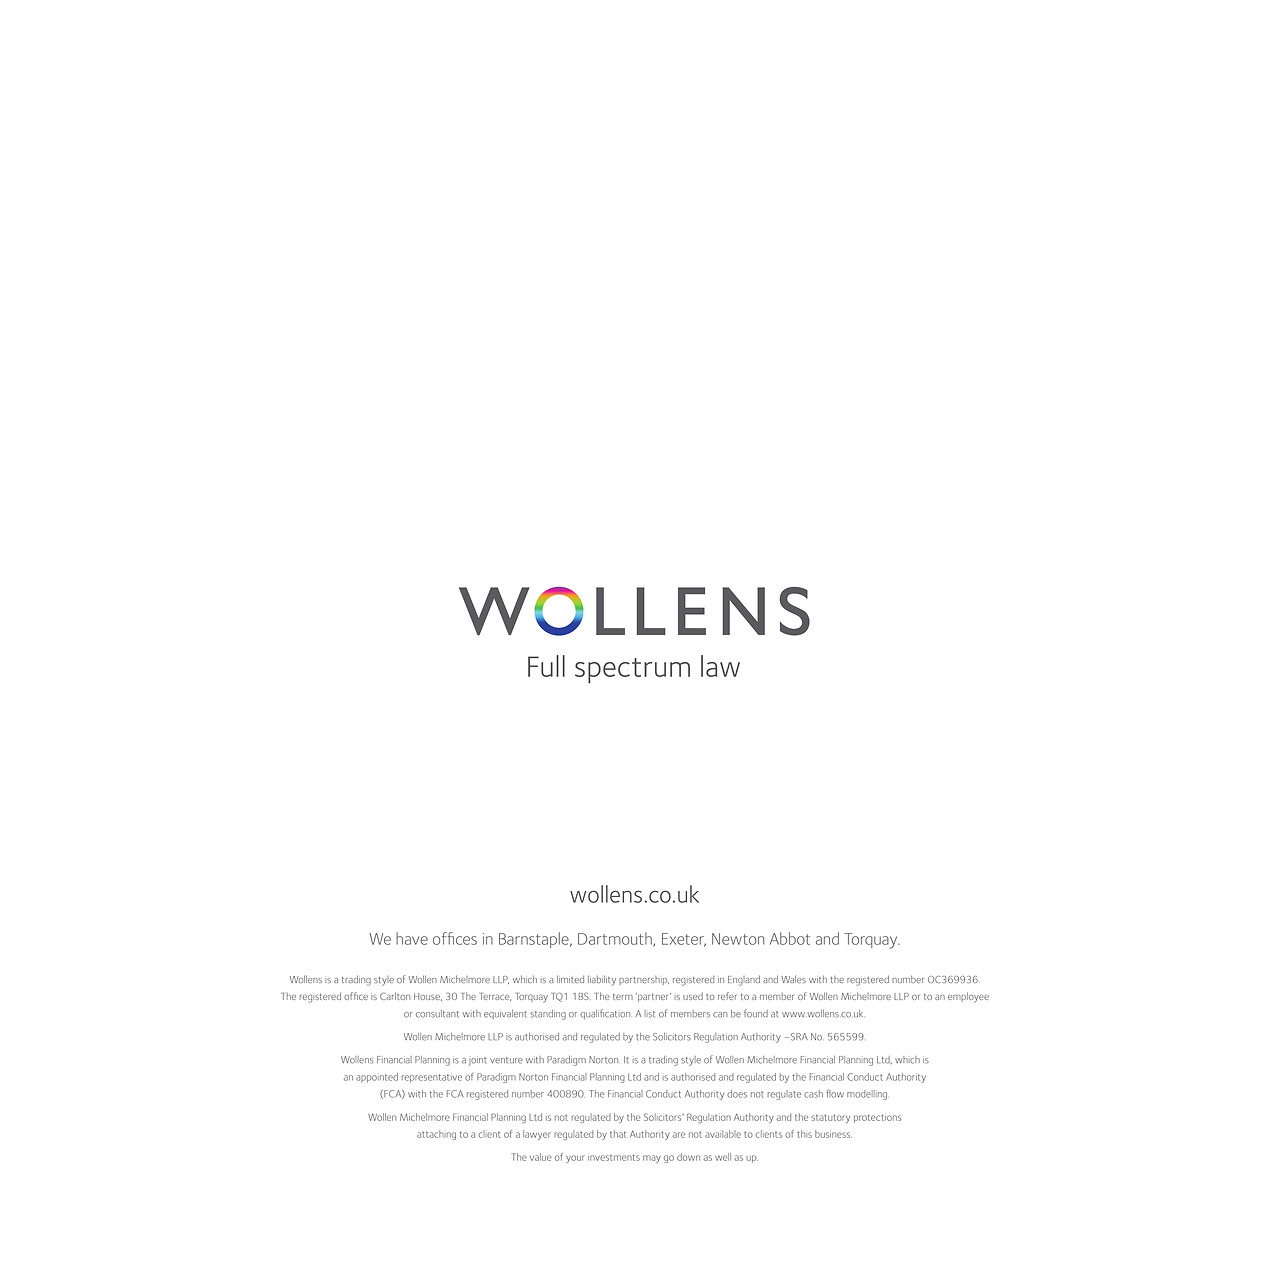 Wollens Corporate Brochure – Full Spectrum Law - Flipbook